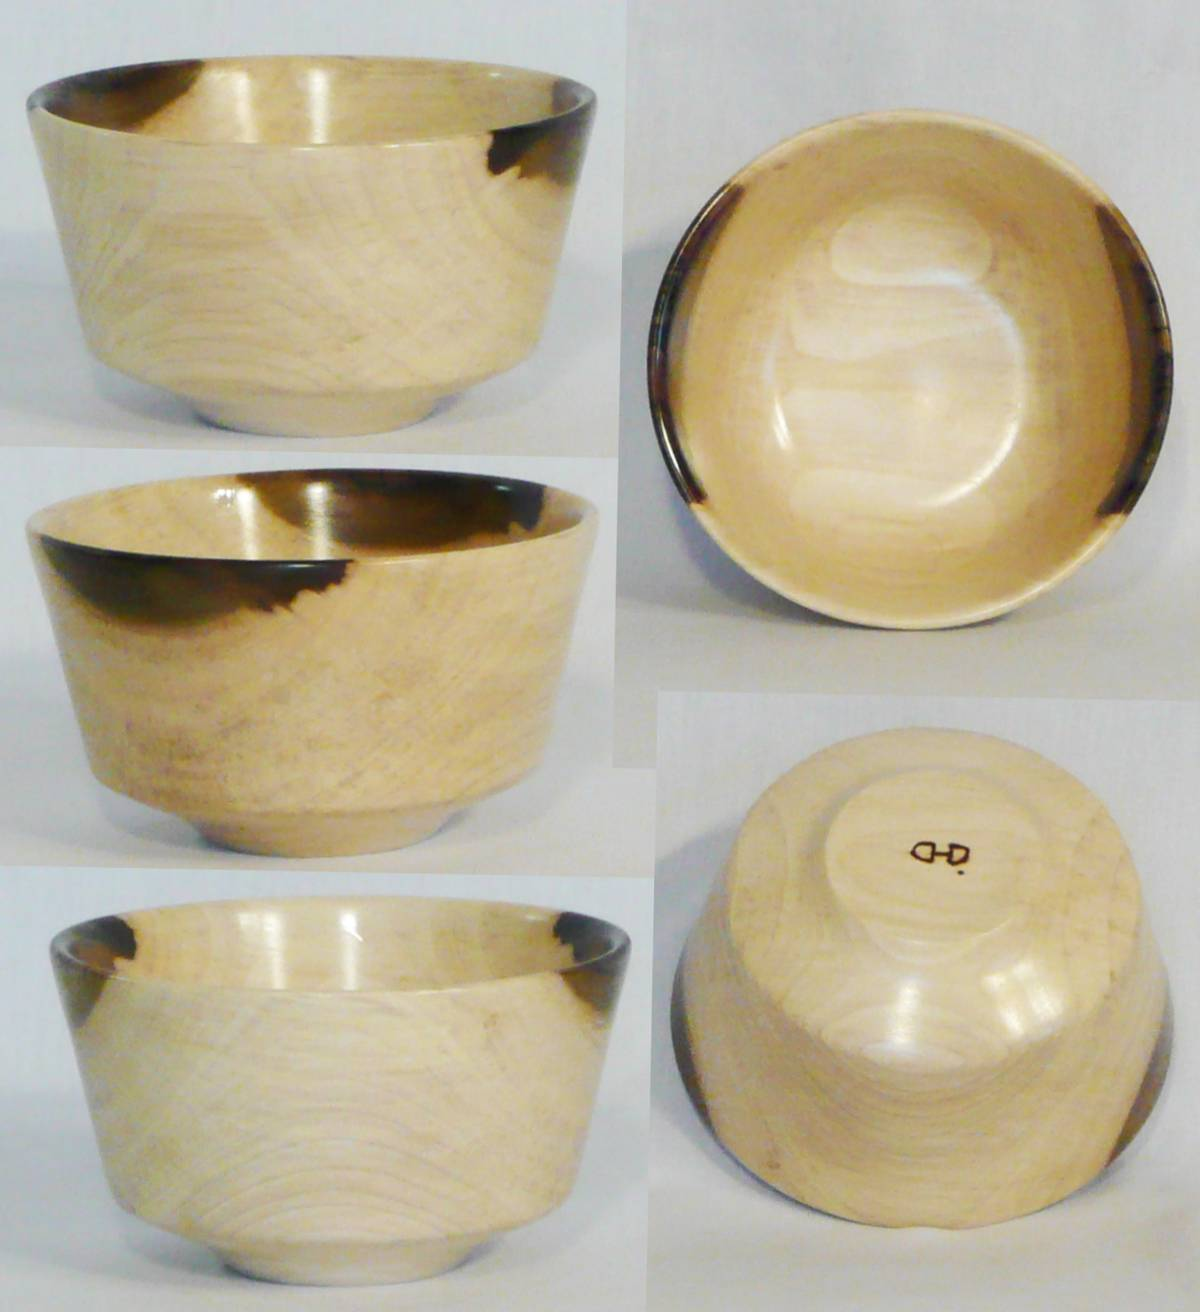 Hand turned bowl from Tulip Poplar by Cynthia D. Haney